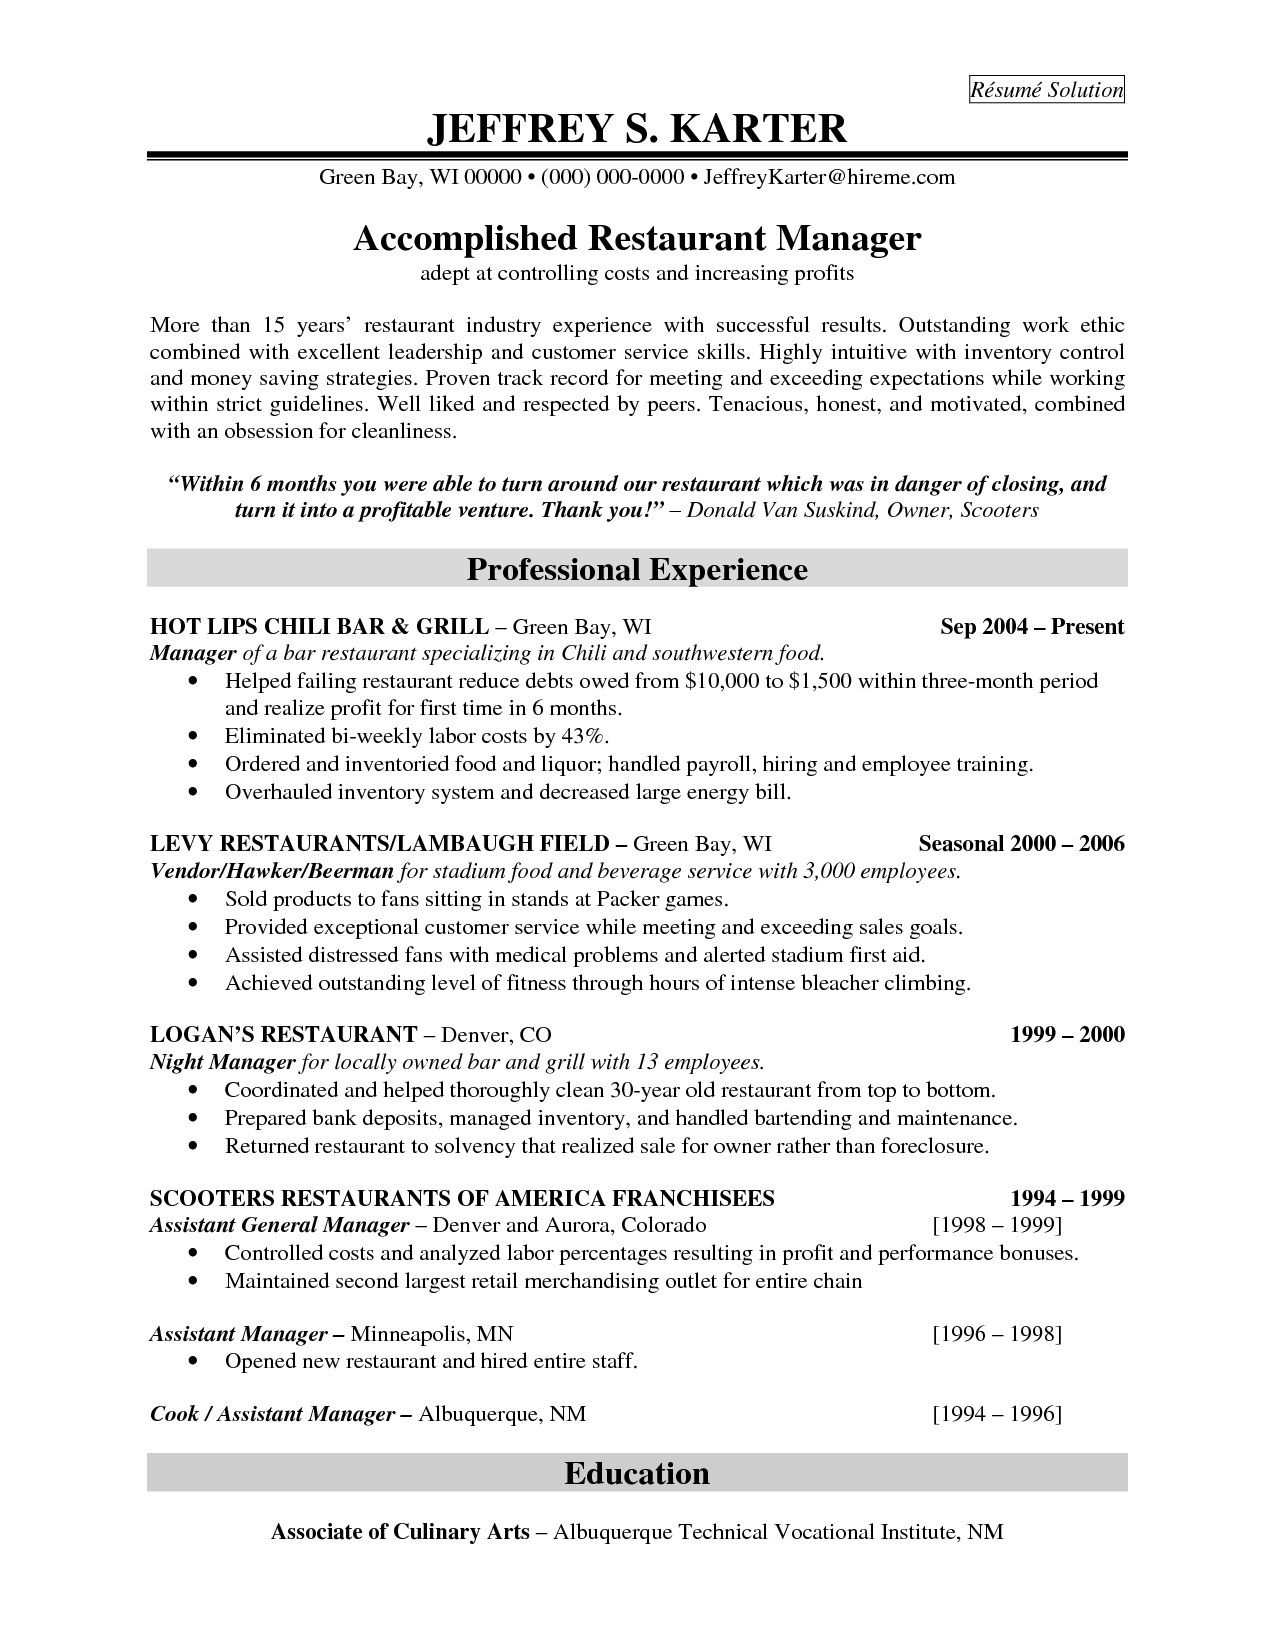 Professional Experience For Accomplidhed Restaurant Manager Resume Samples  Restaurant Manager Resume